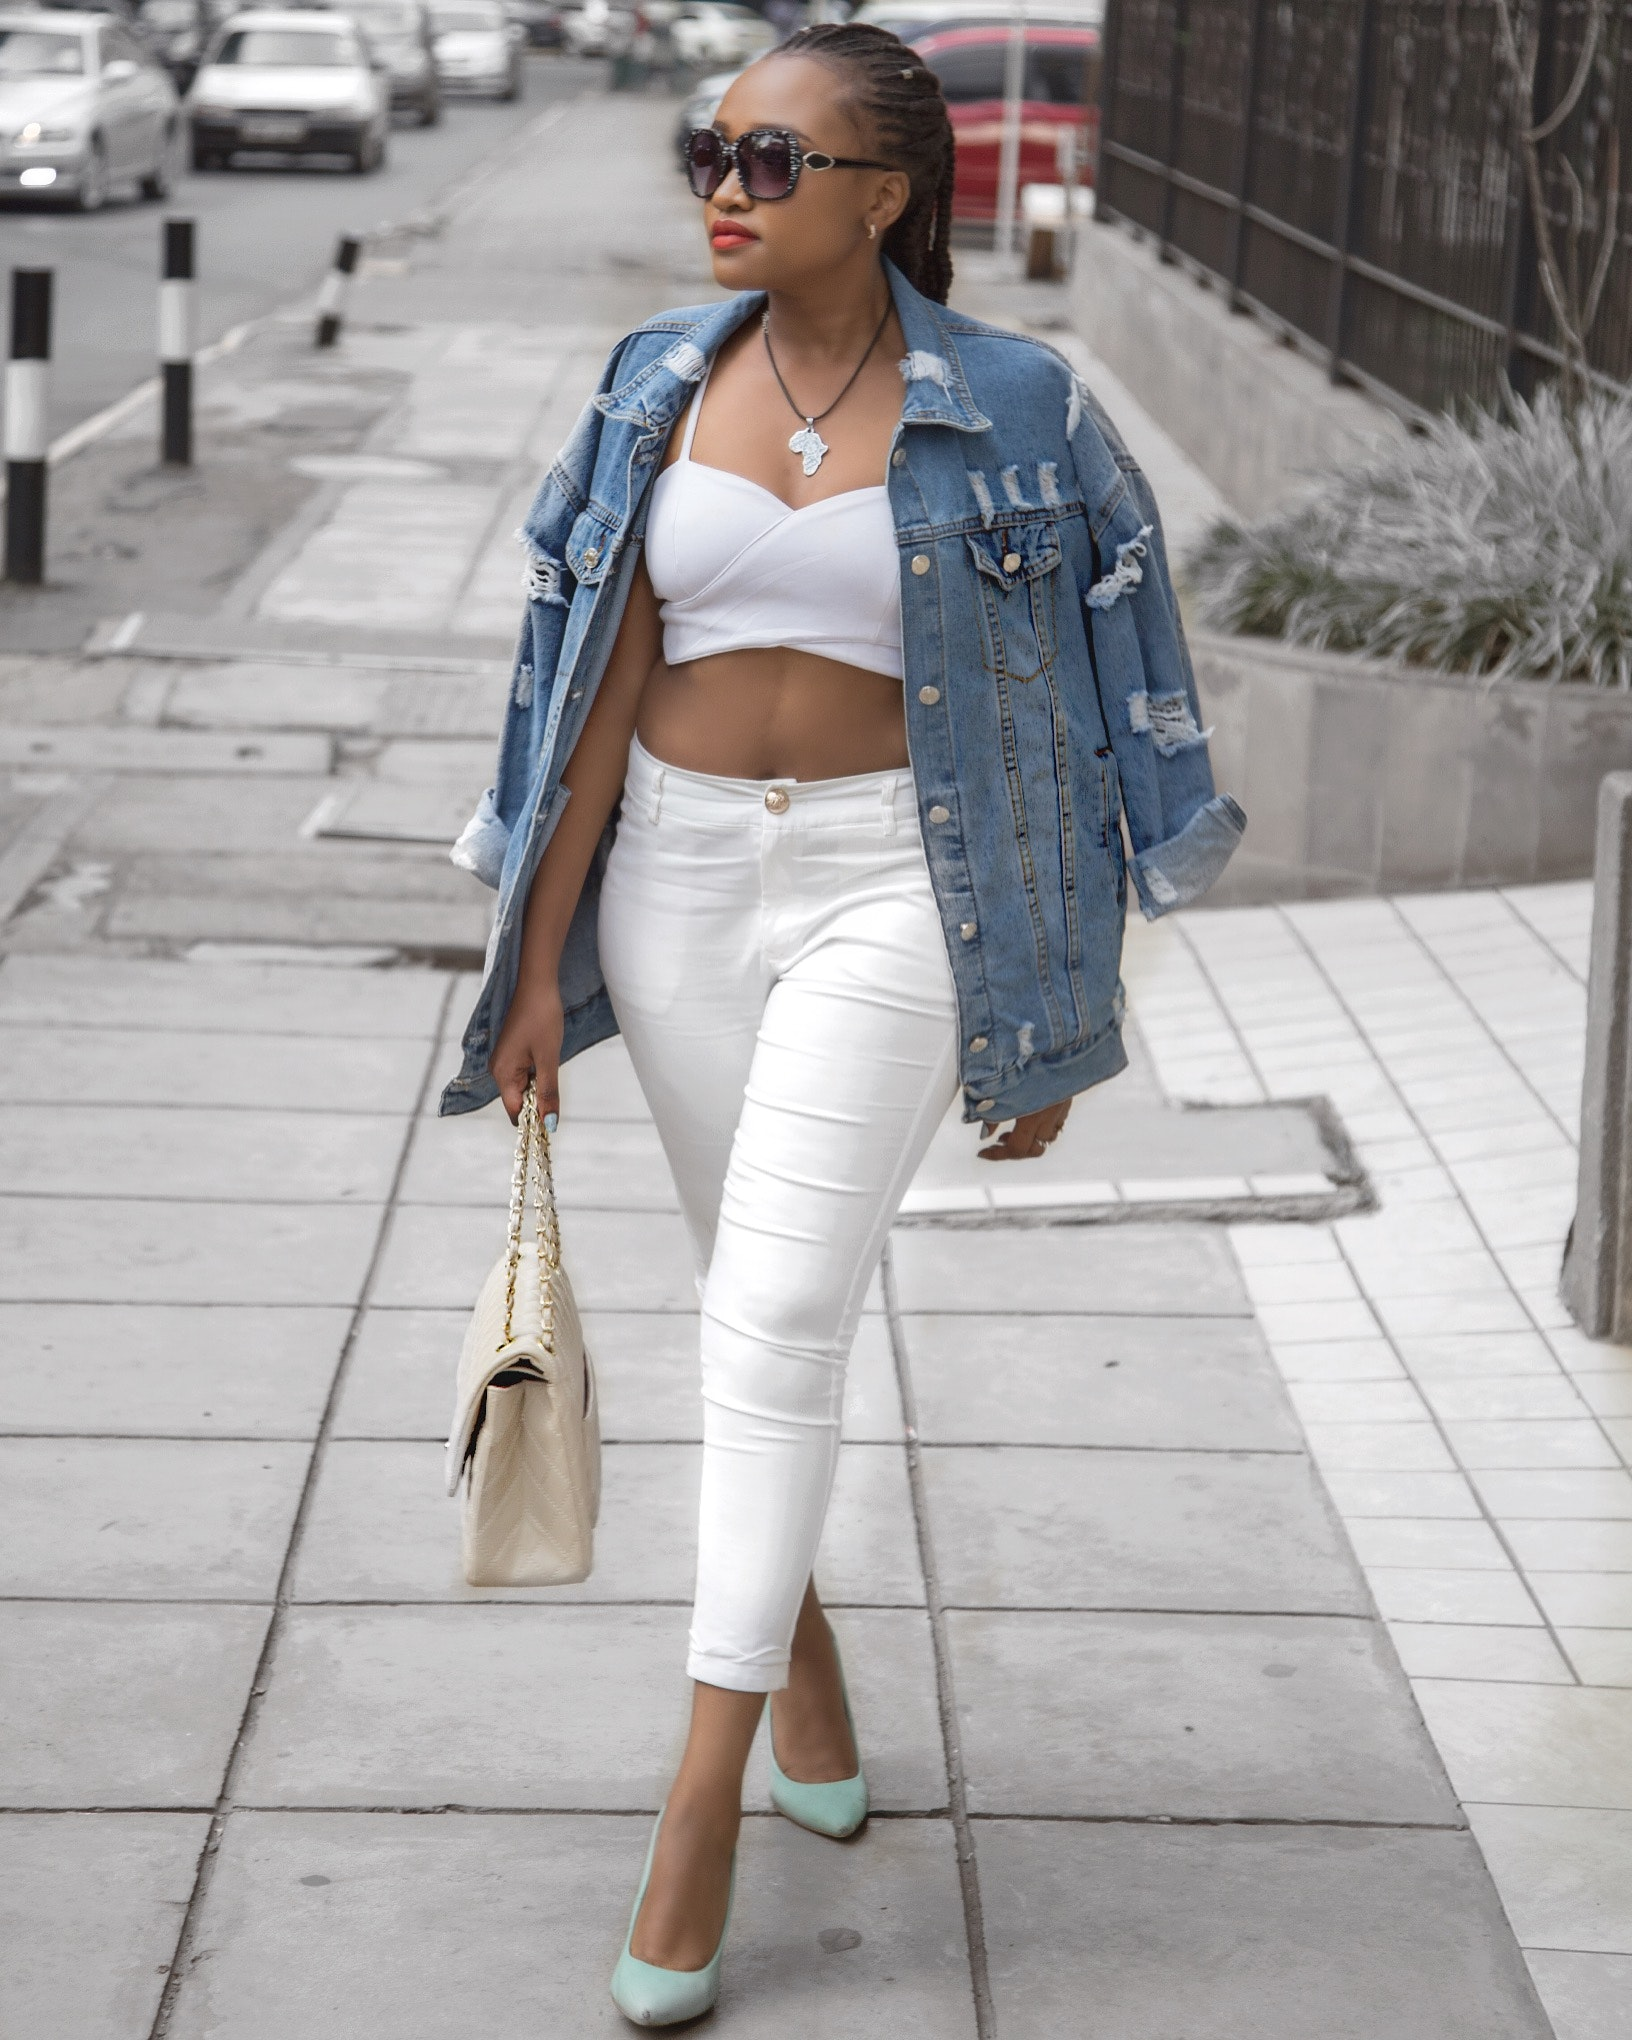 Photo of Woman Wearing White Crop Top and Denim Jacket Walking in ...